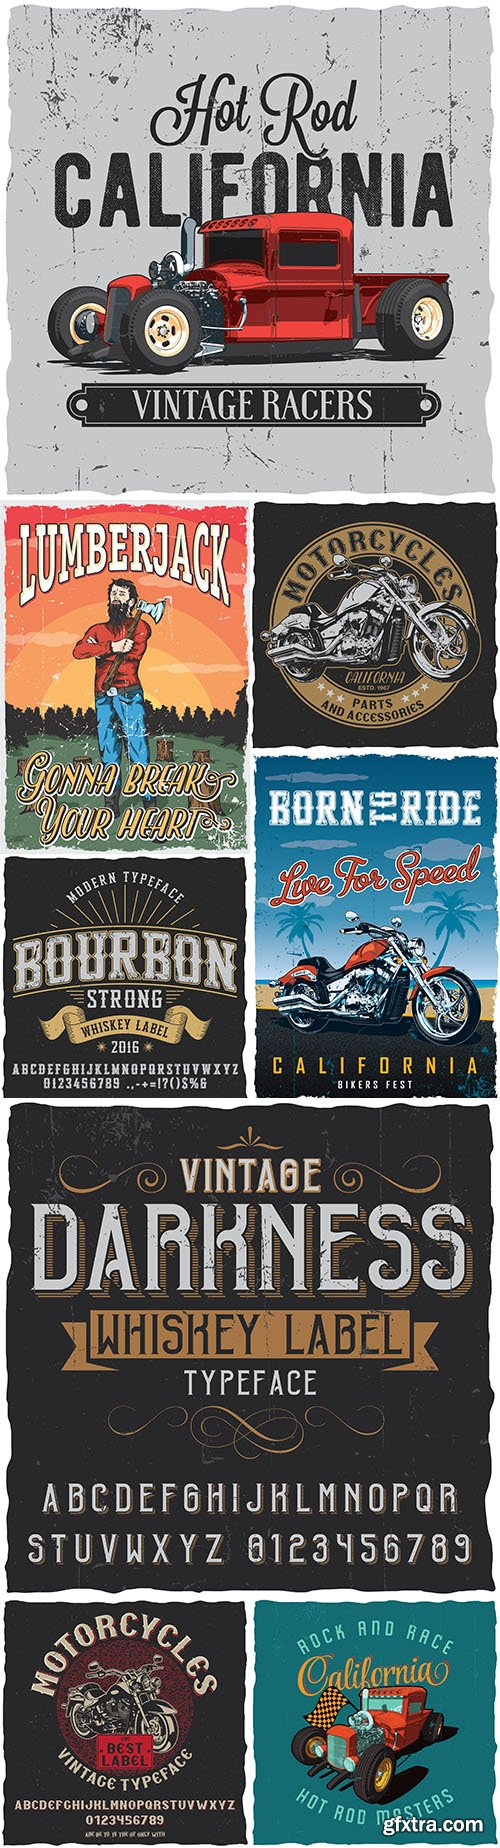 Vintage poster with details and accessories of motorcycles for T-shirts